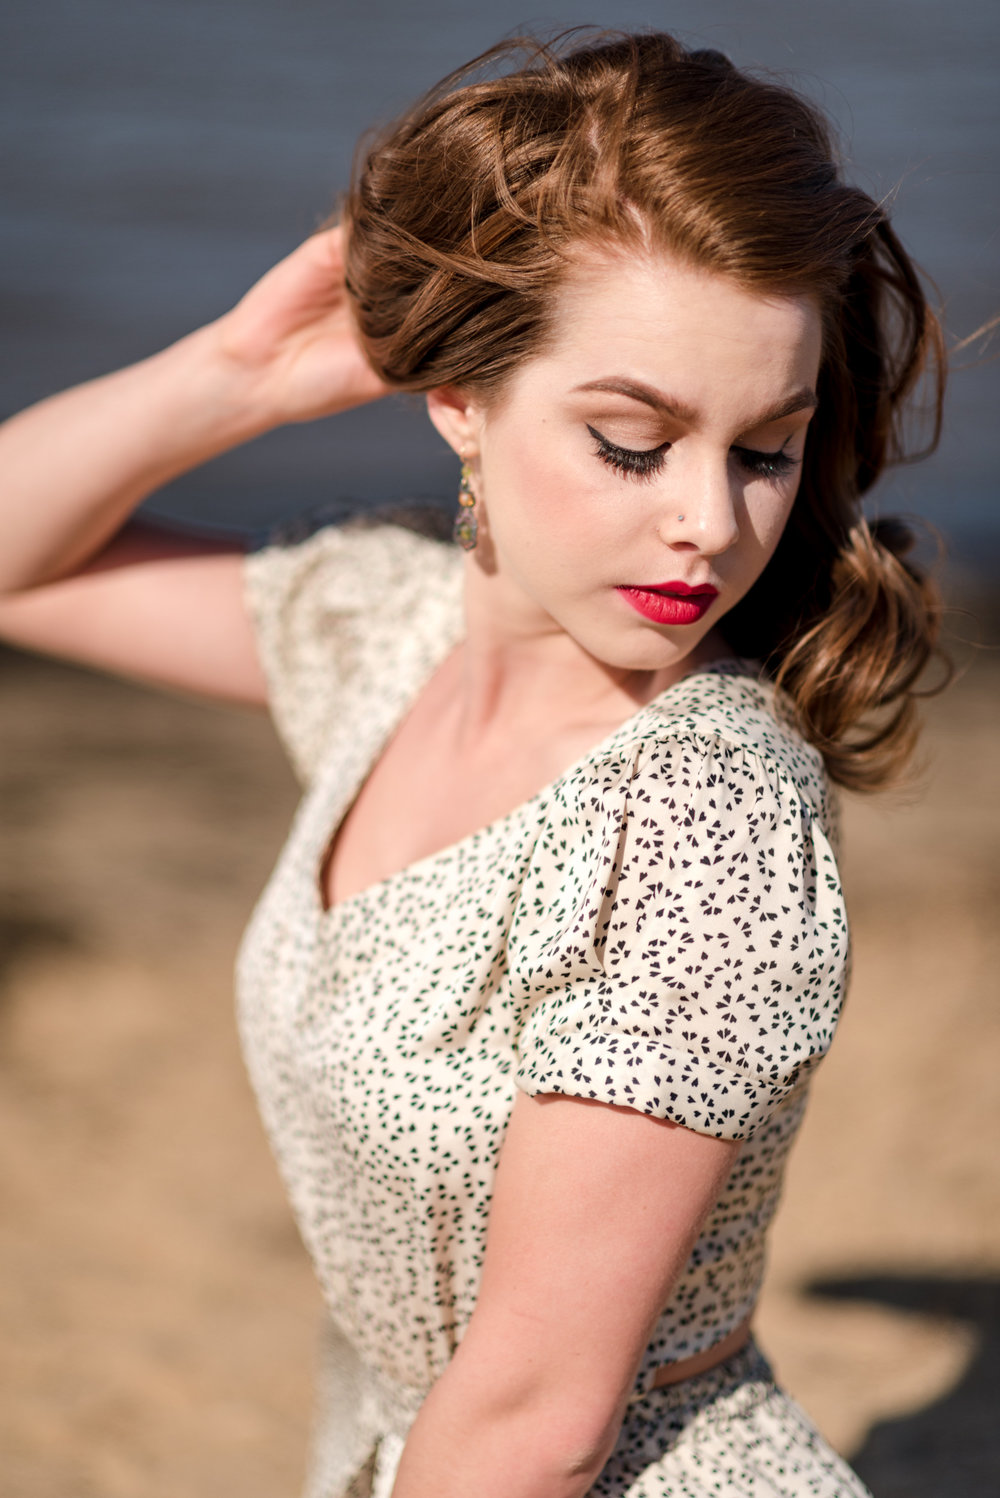 amberly-vintage-beach-session-wolfcrest-photography-5.jpg